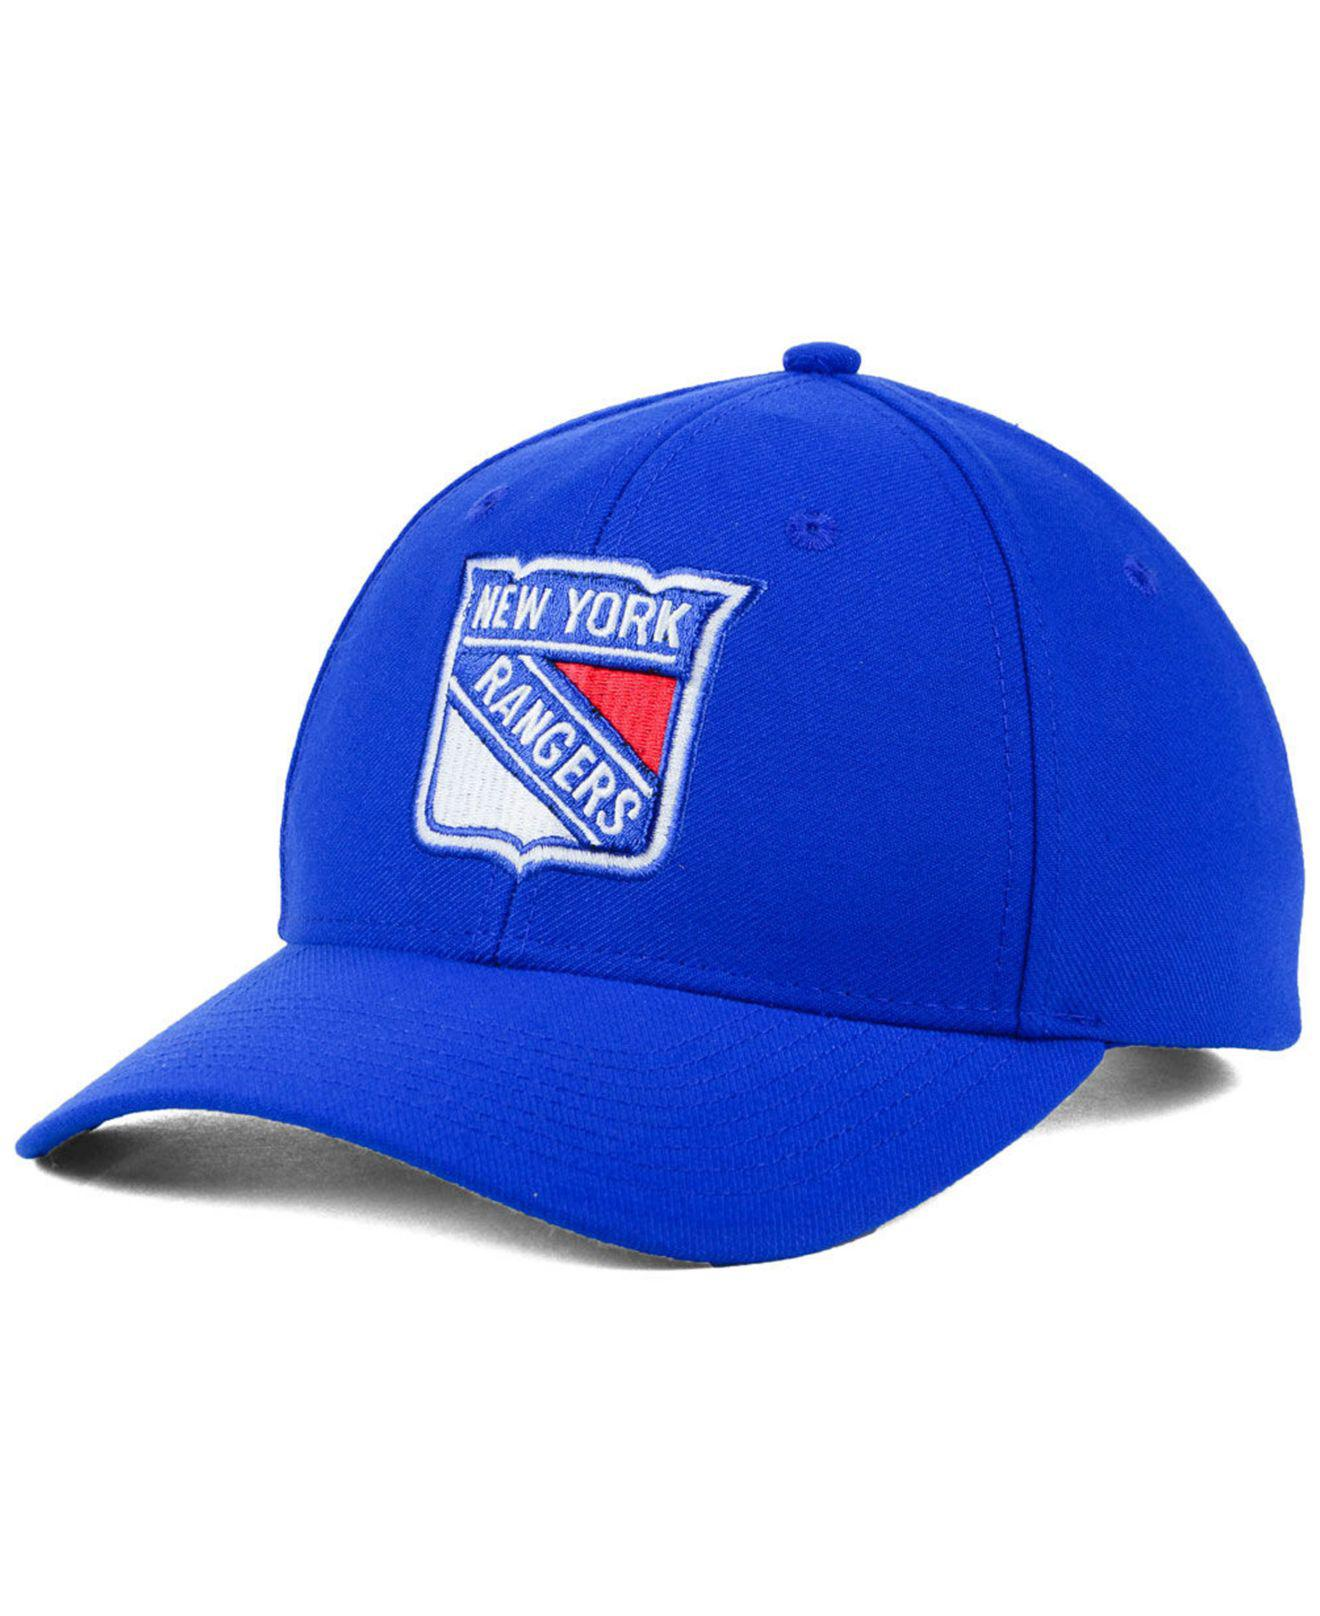 1ee6afd609e Lyst - adidas Core Basic Adjustable Snapback Cap in Blue for Men